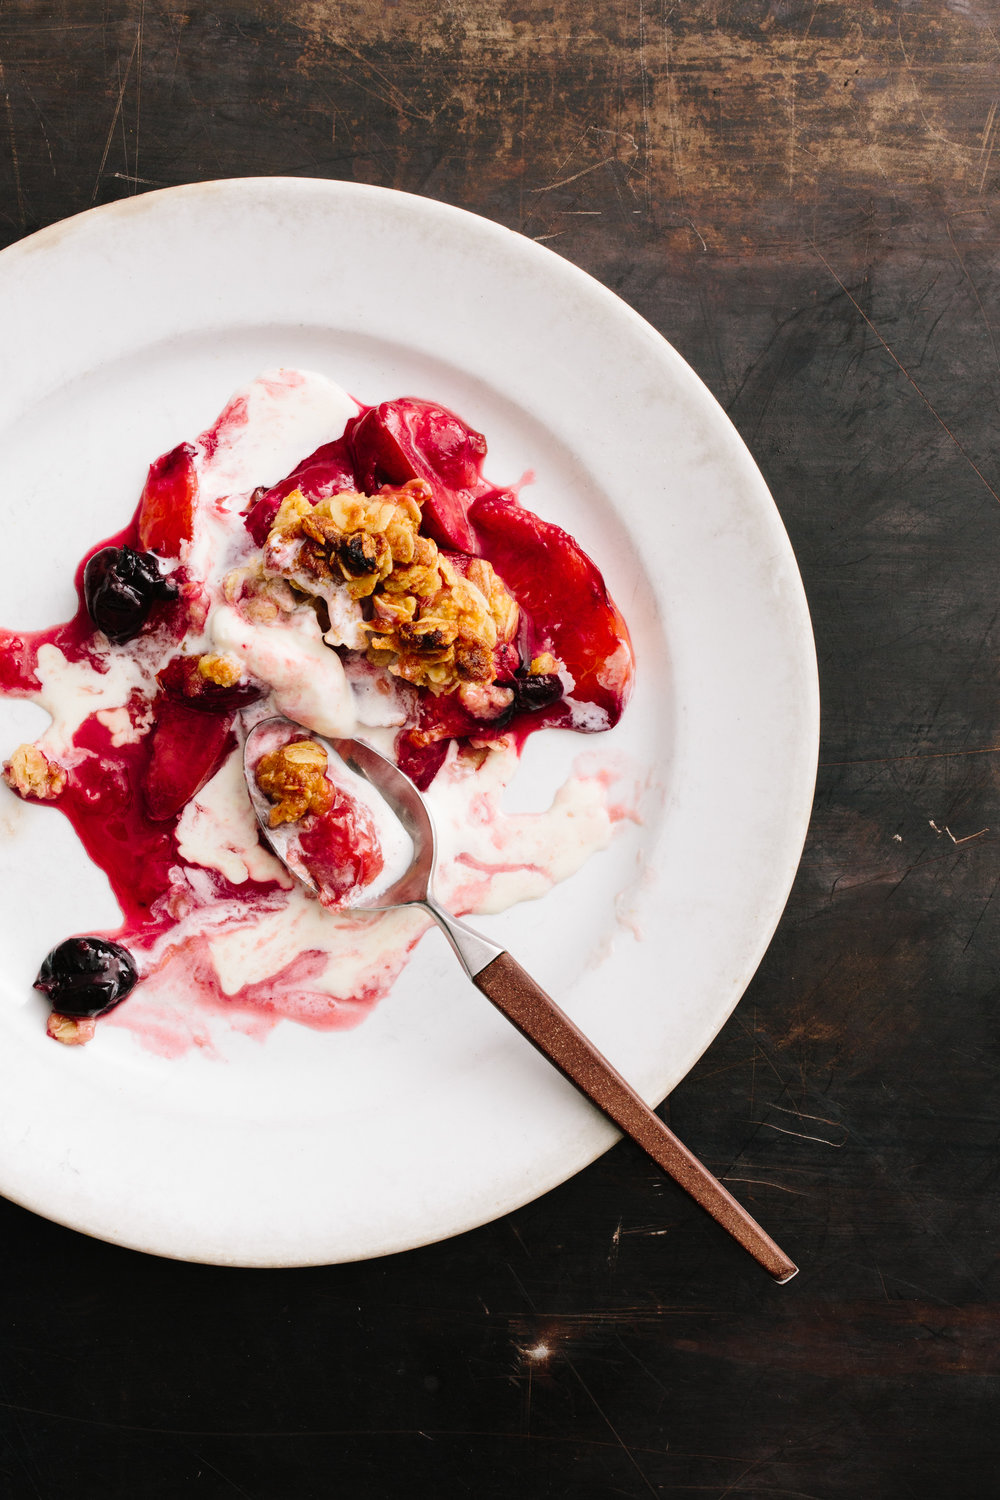 berry-crumble-the-kitchn-christine-han-photography.jpg